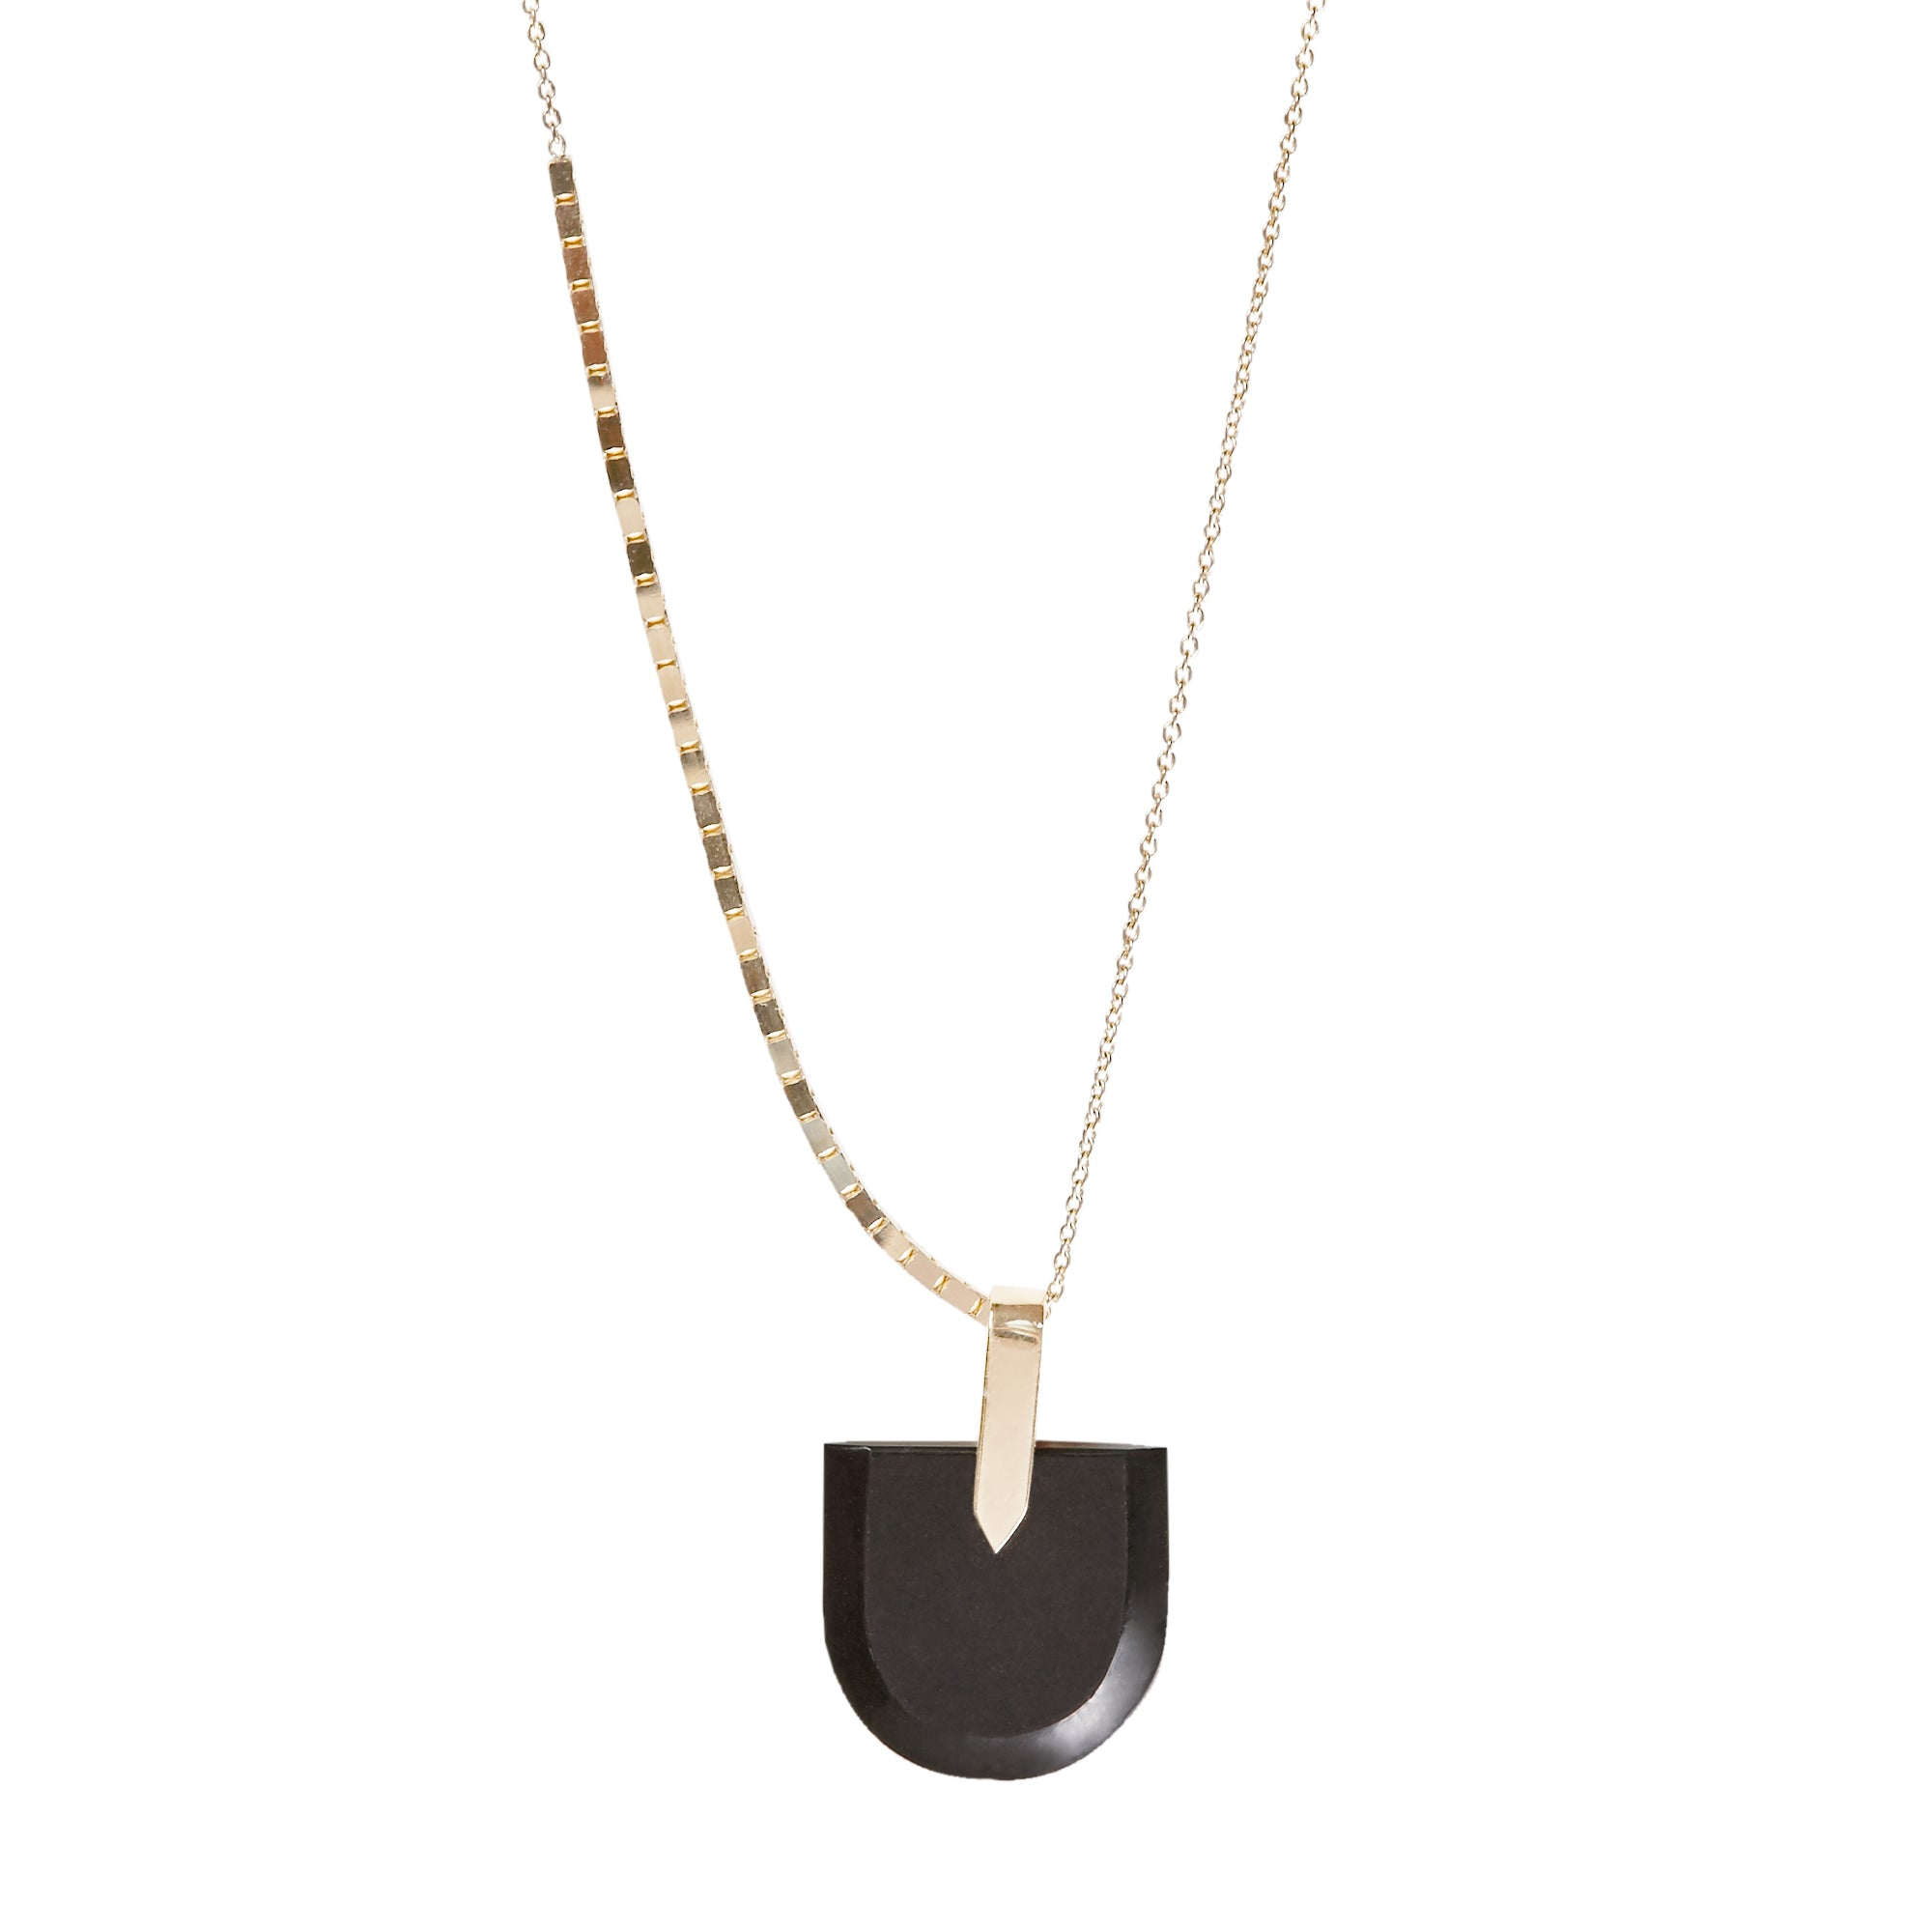 Halo Necklace + Brevity Pendant Black Jade Large